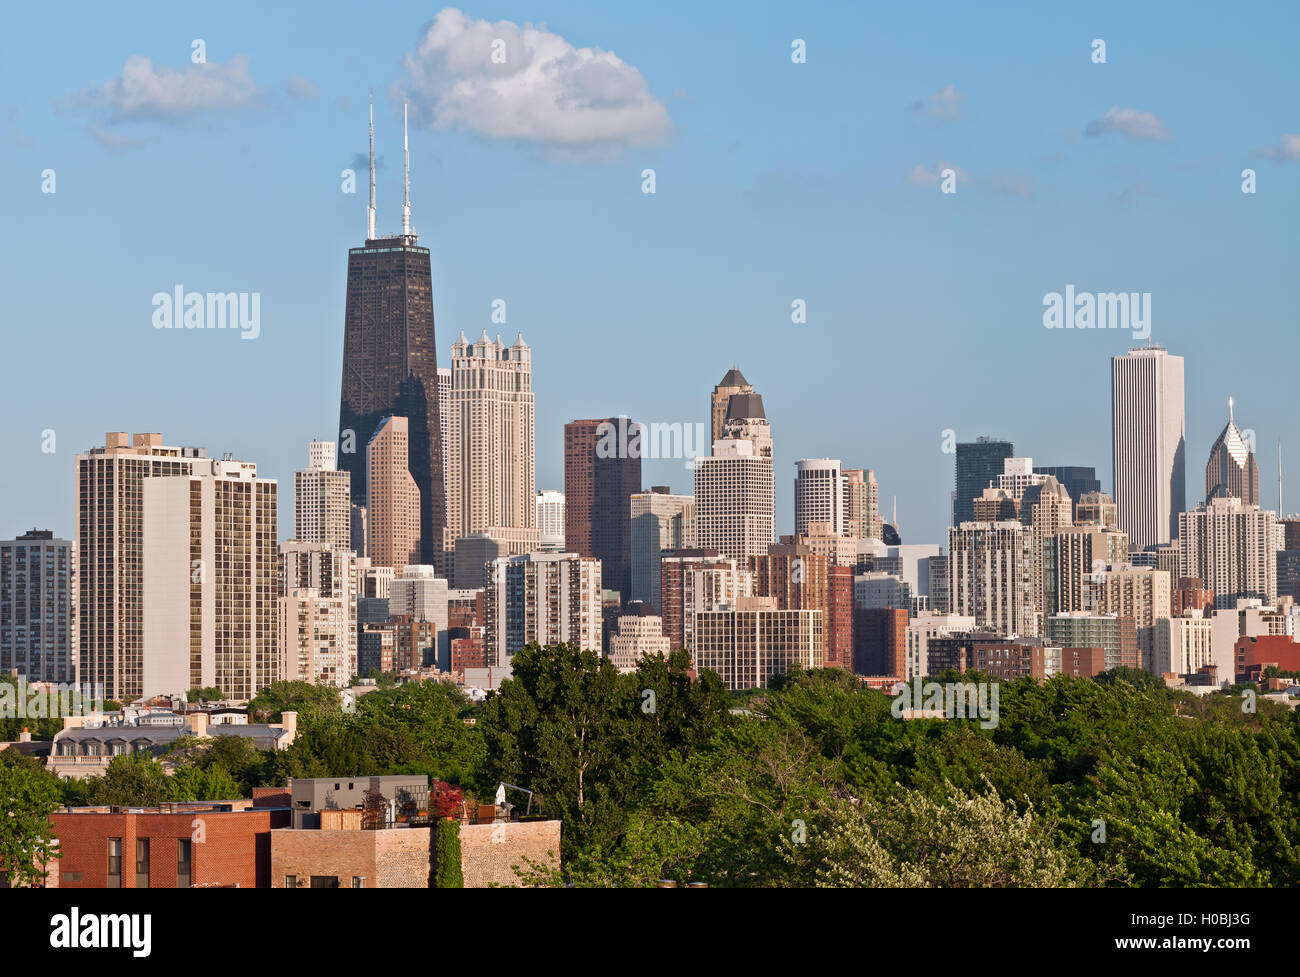 Chicago. Image of the Chicago downtown district at late afternoon. - Stock Image